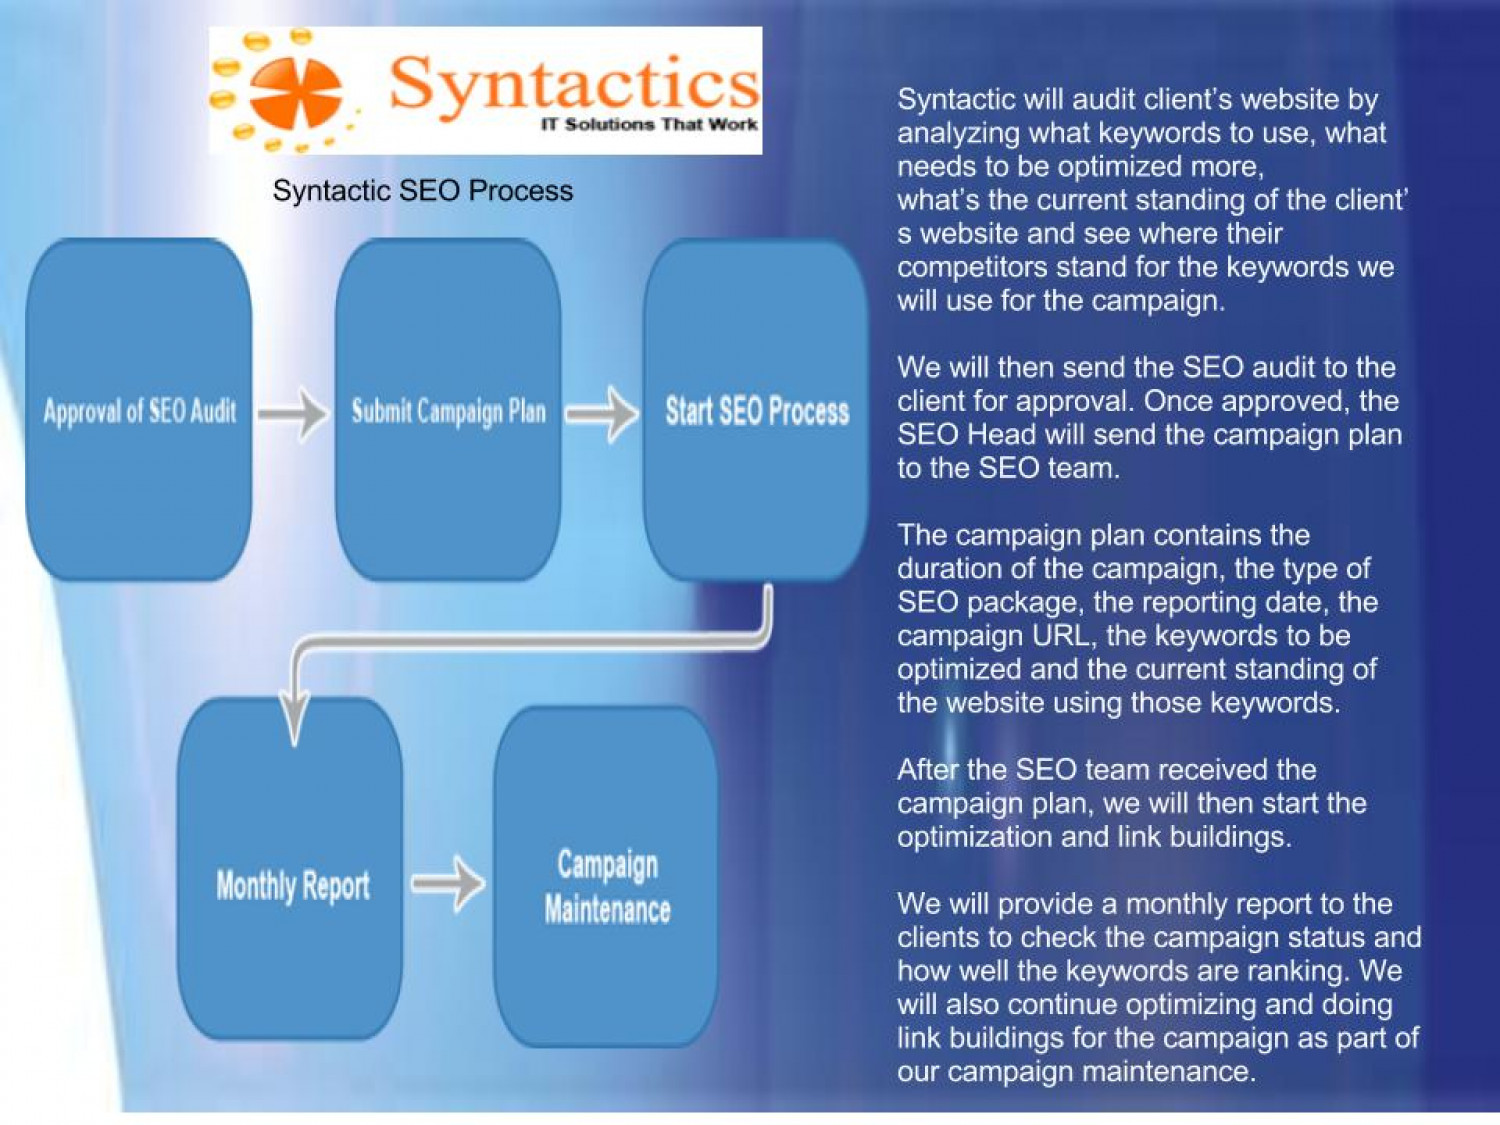 SyntacticS SEO Process Infographic